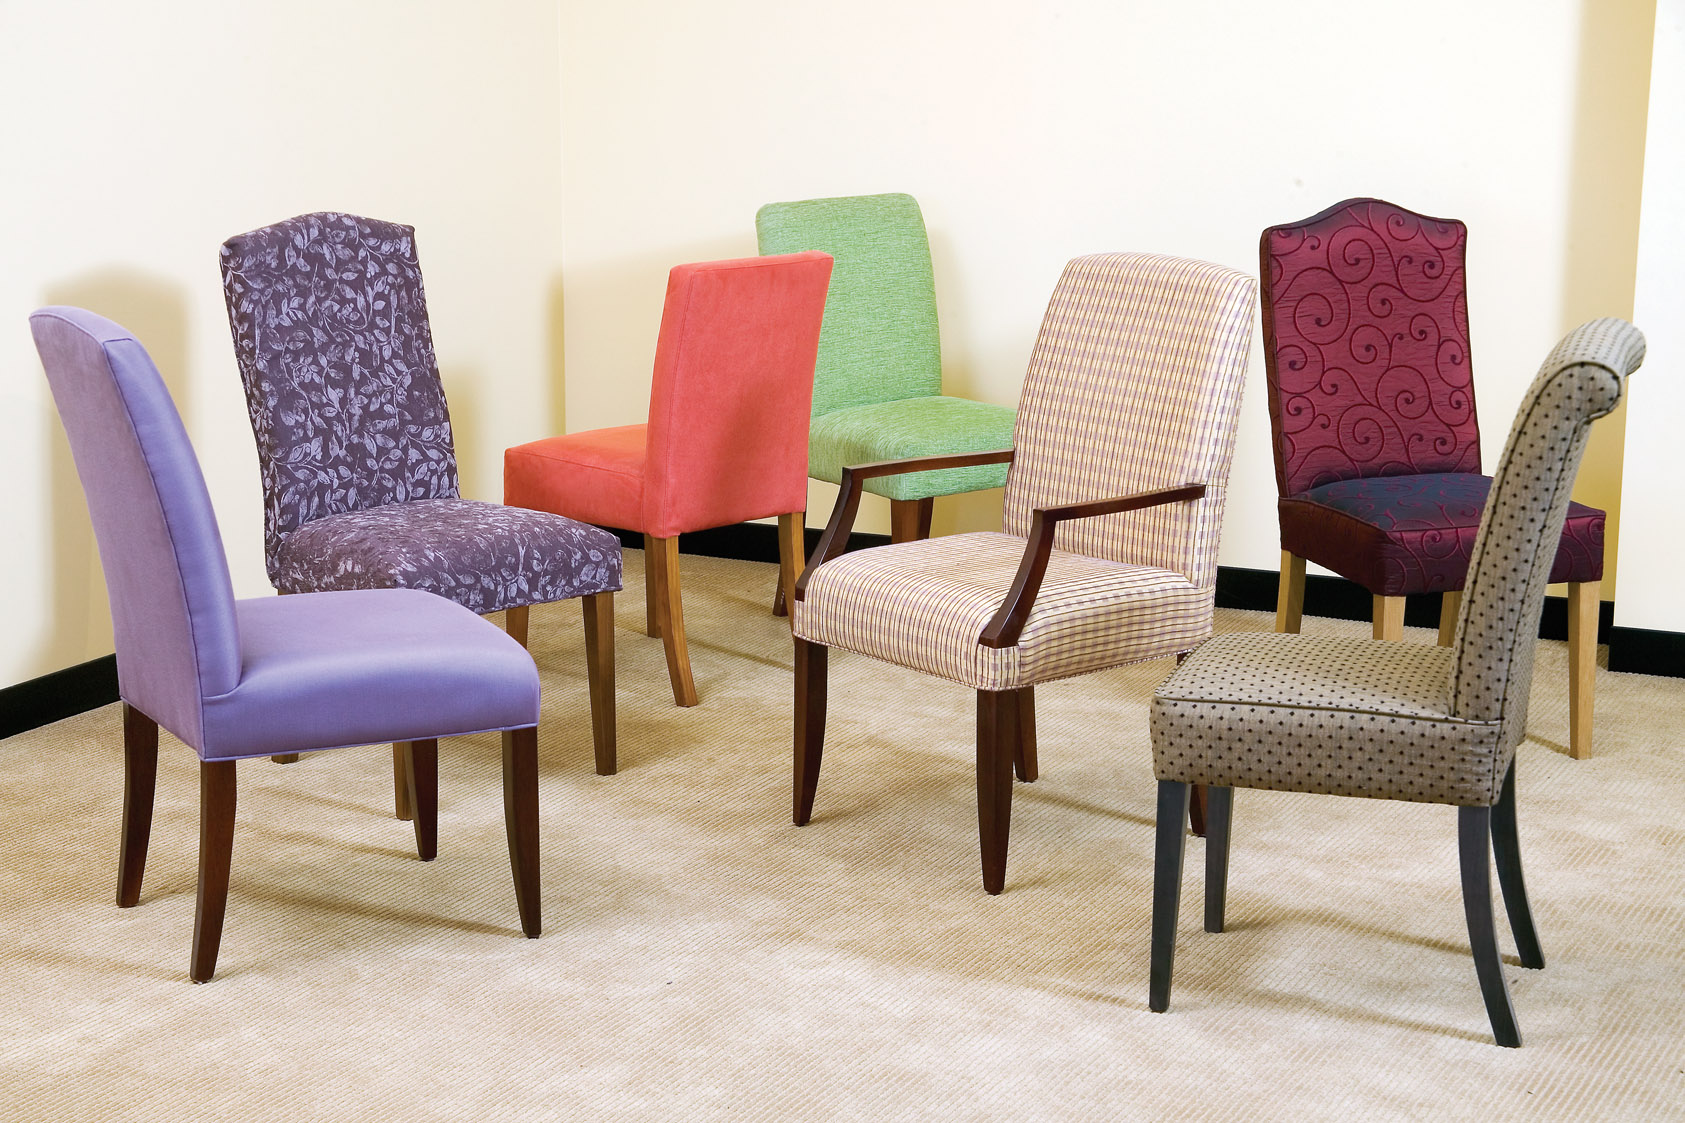 Dining Chairs Sofa Design And